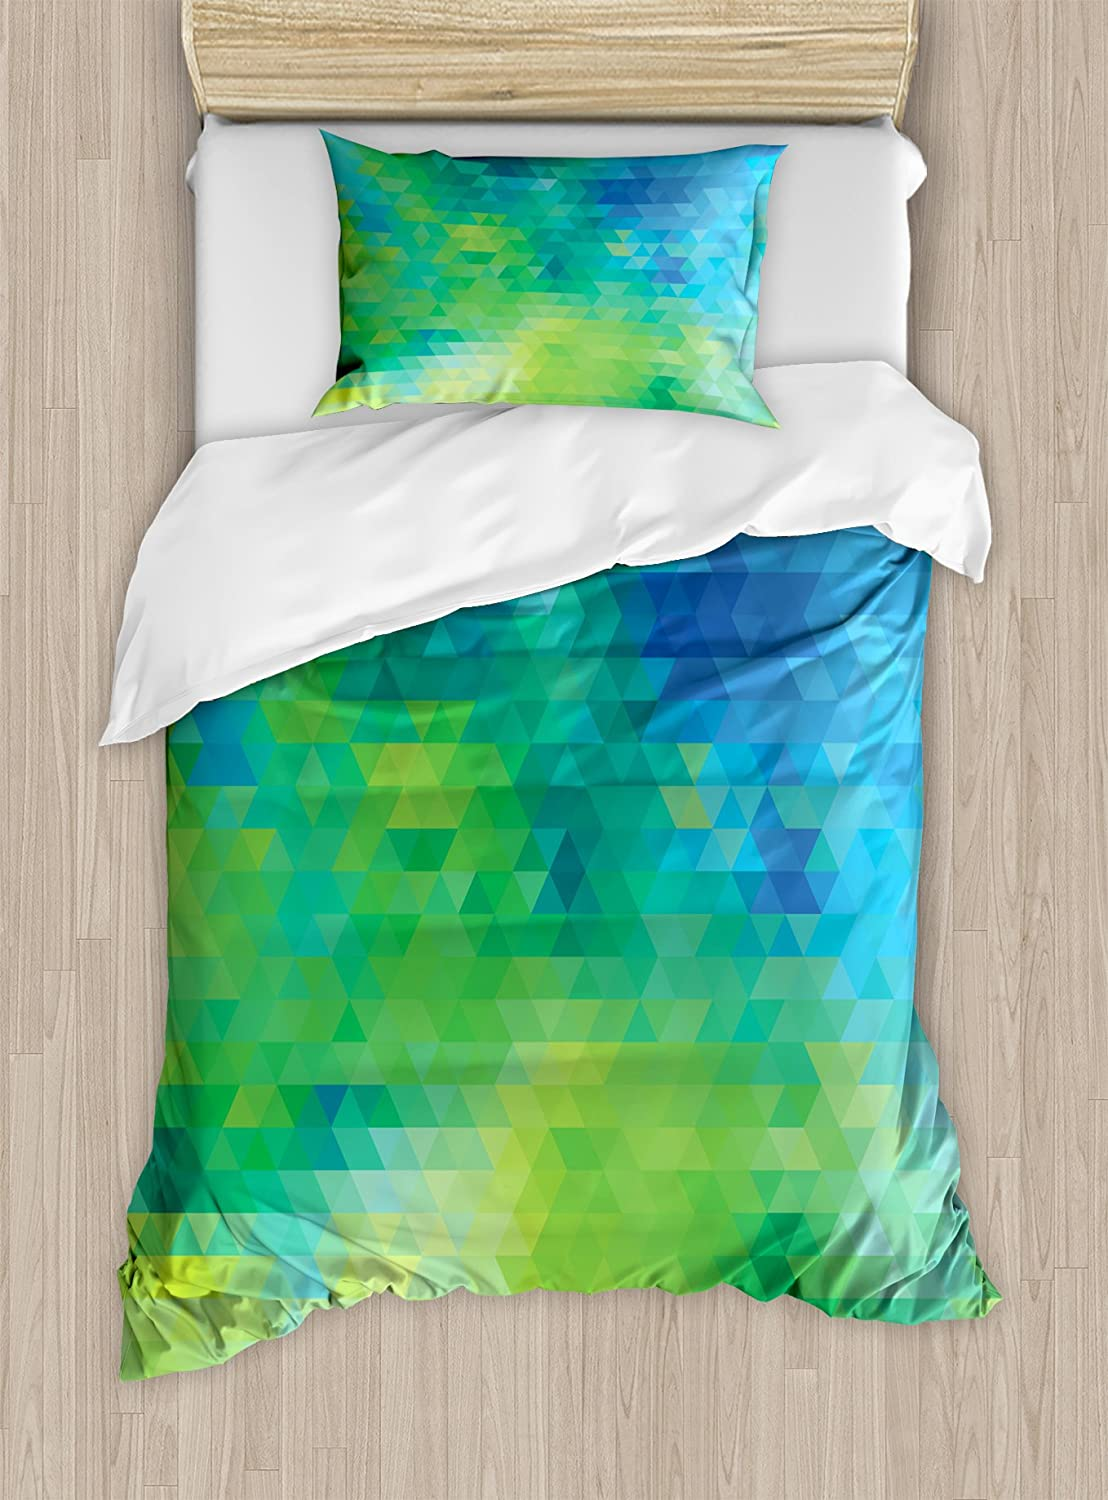 Ambesonne Green and Blue Duvet Cover Set Twin Size, Geometric Abstract Pattern with Triangles Ombre Inspired, Decorative 2 Piece Bedding Set with 1 Pillow Sham, Turquoise Lime Green Yellow